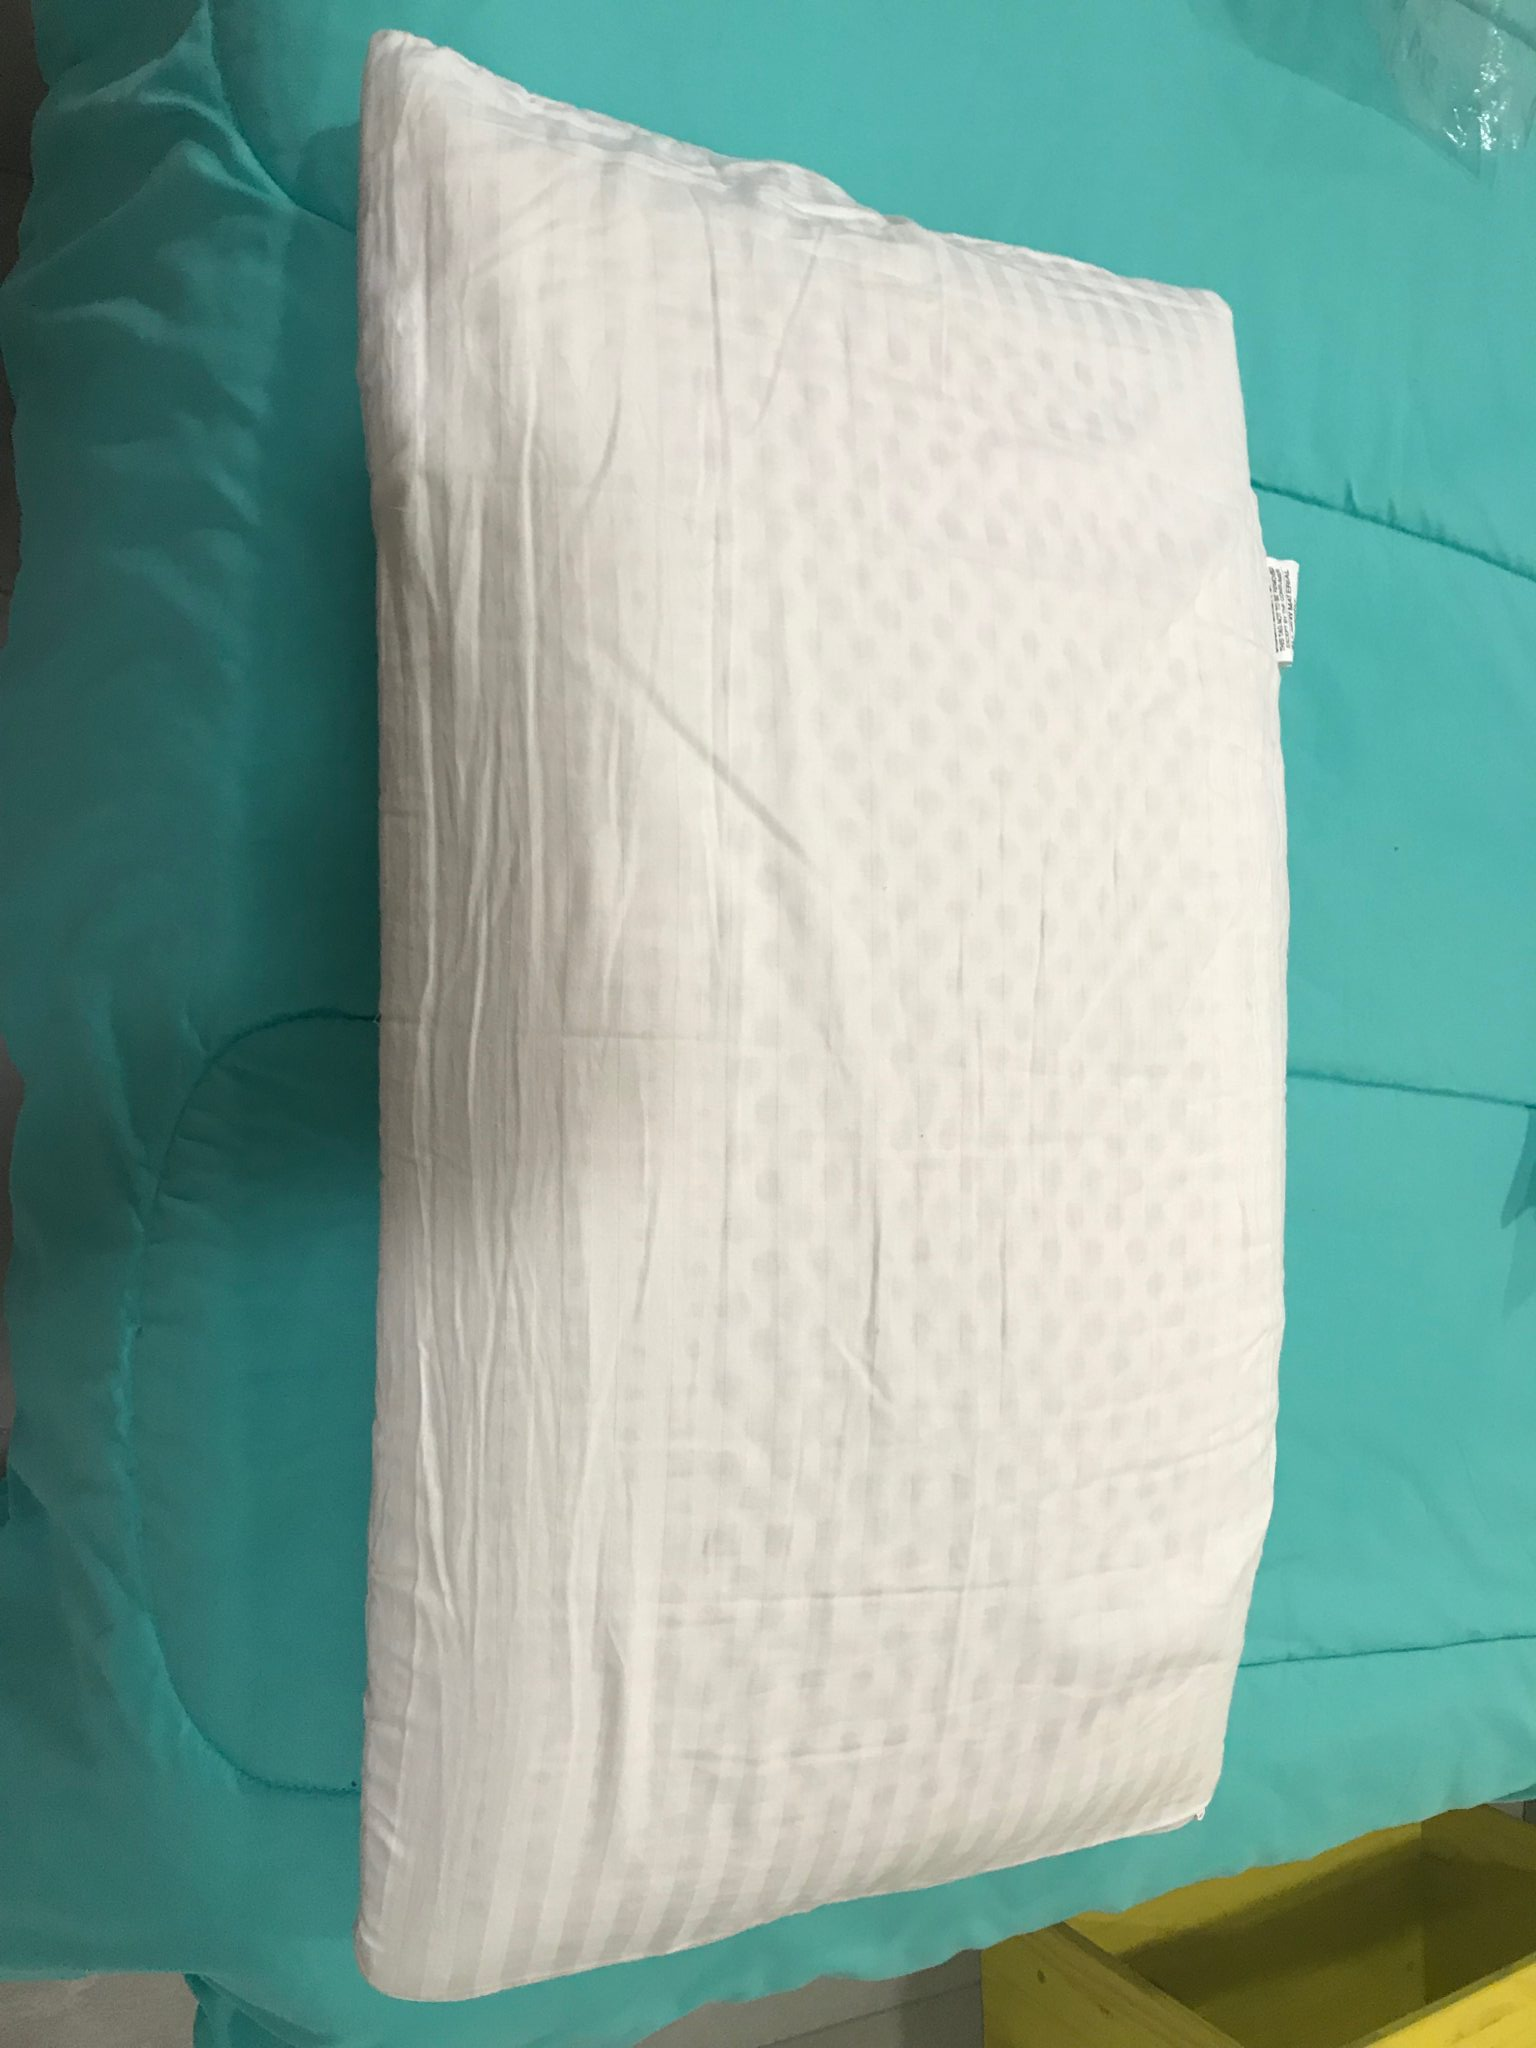 Plushbeds Solid Latex Pillow Review